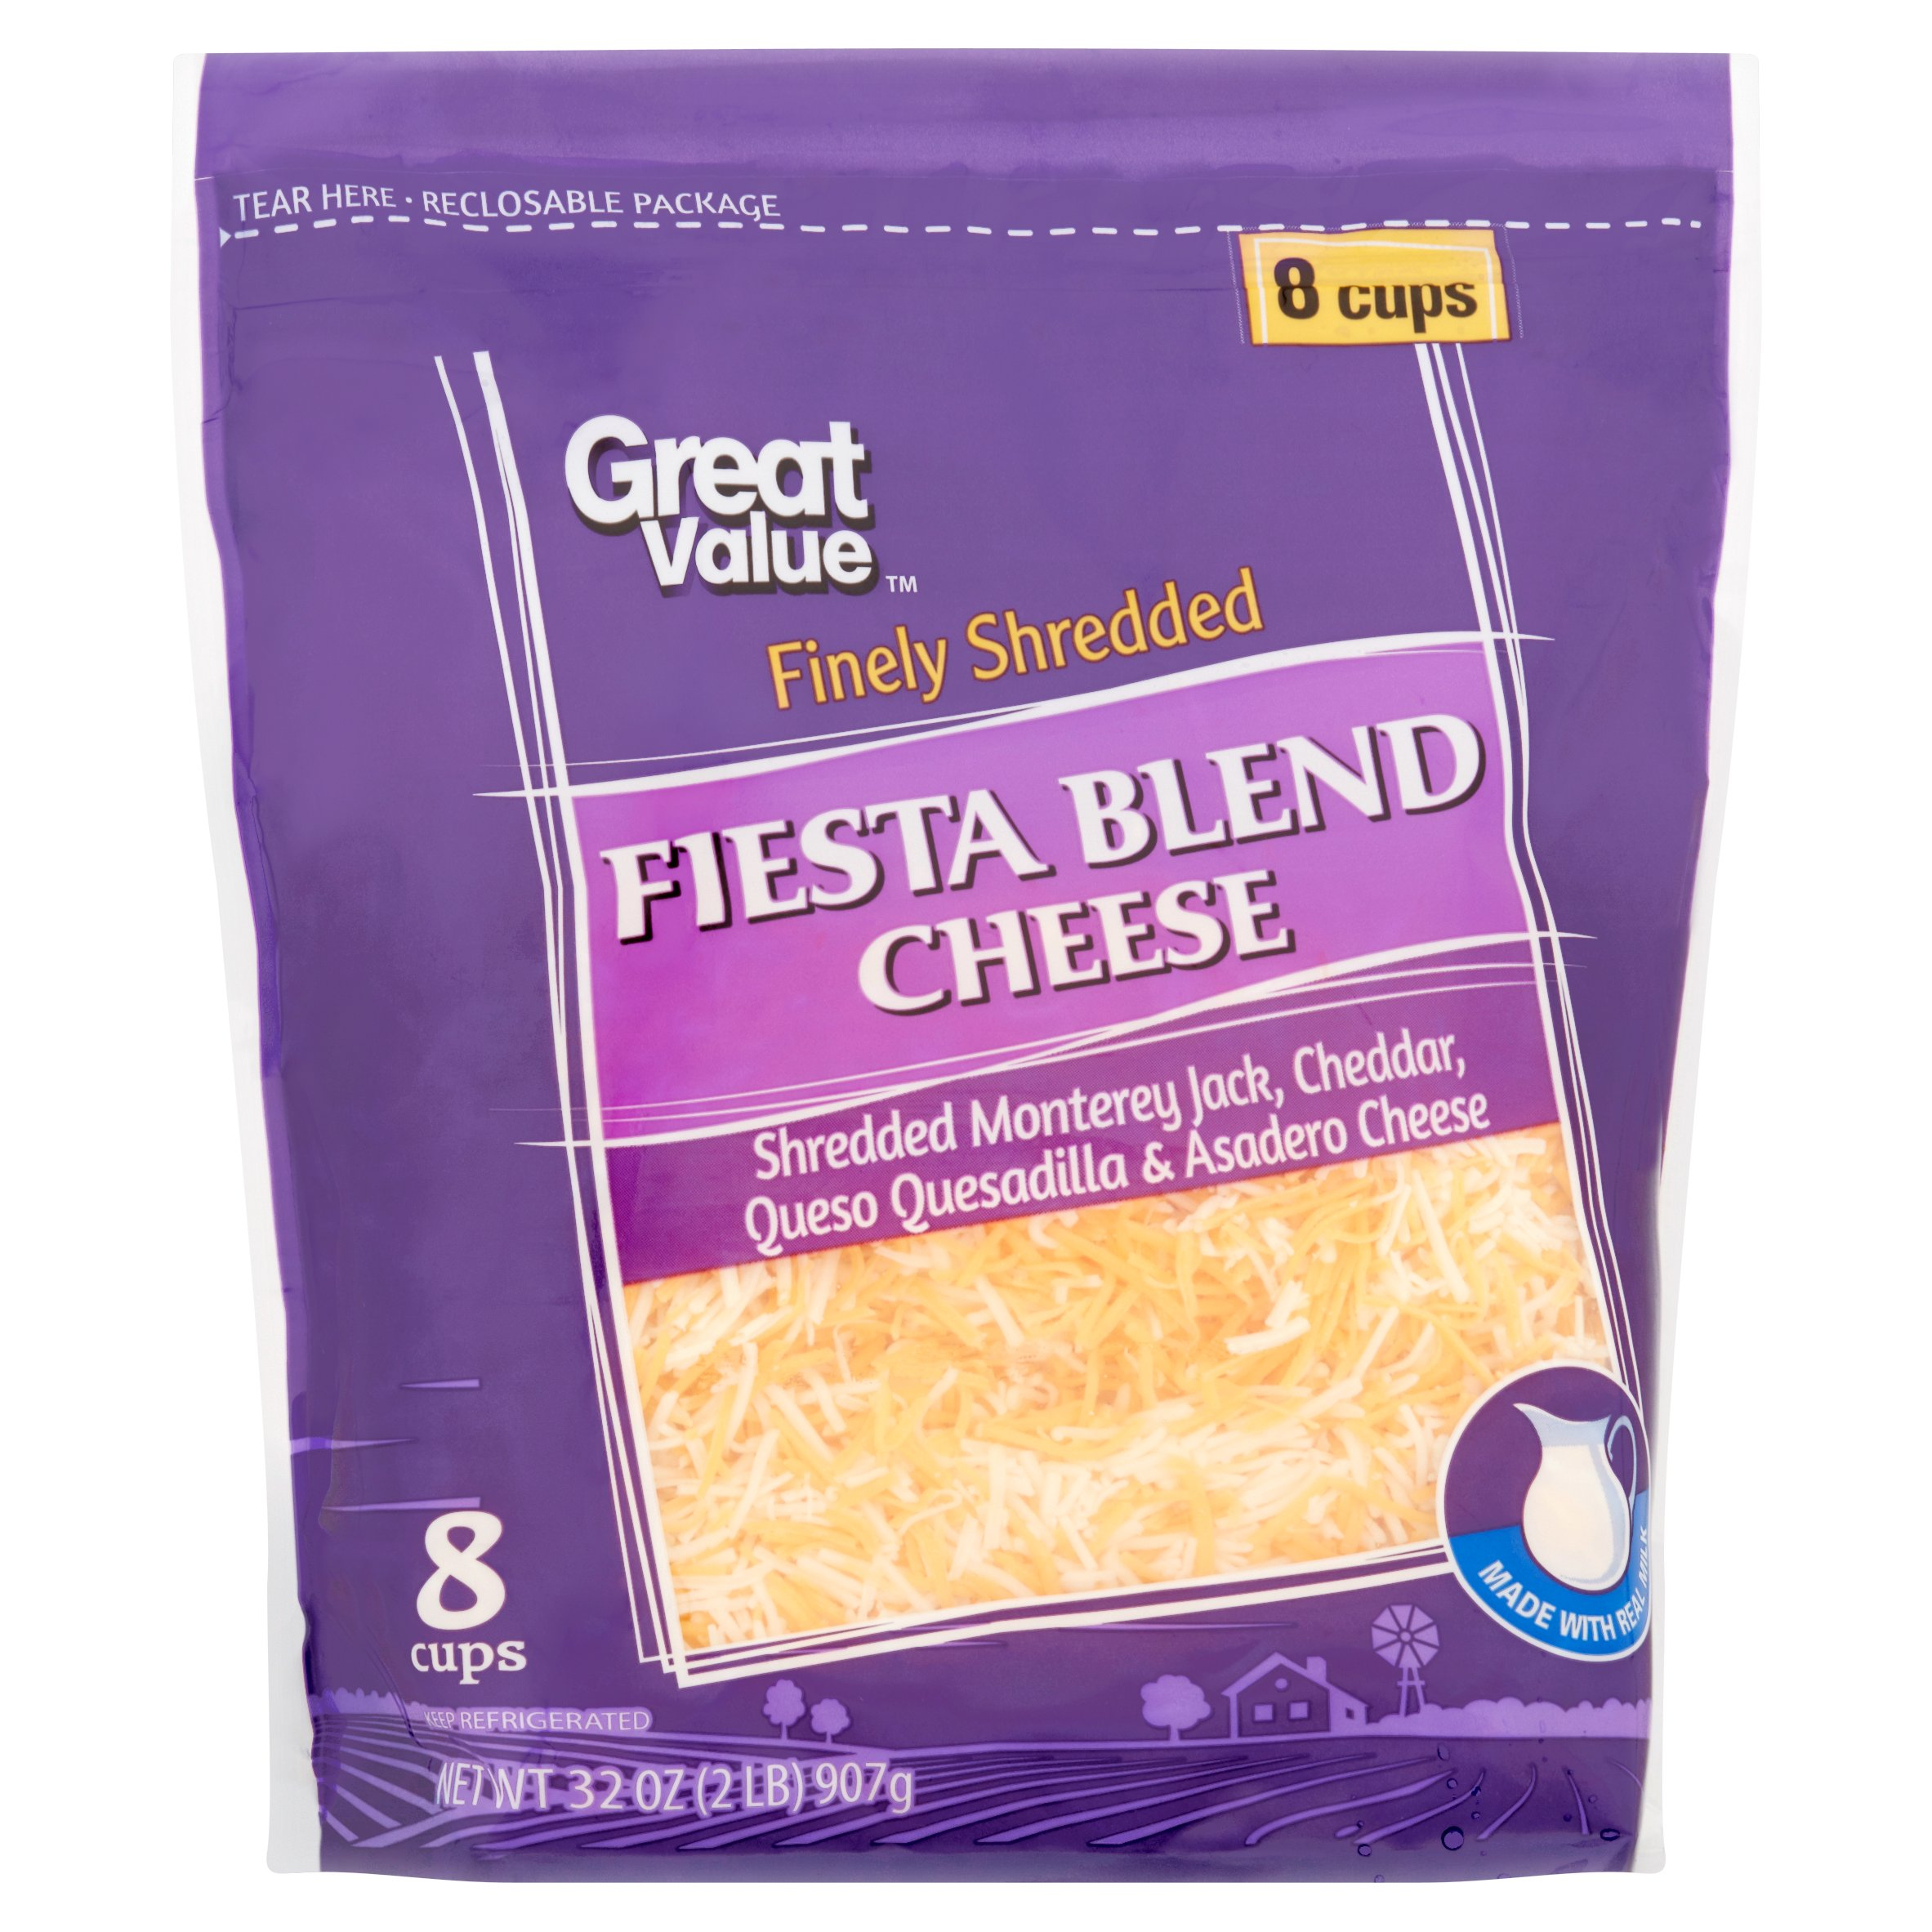 Great Value Finely Shredded Fiesta Blend Cheese, 32 oz by Wal-Mart Stores, Inc.